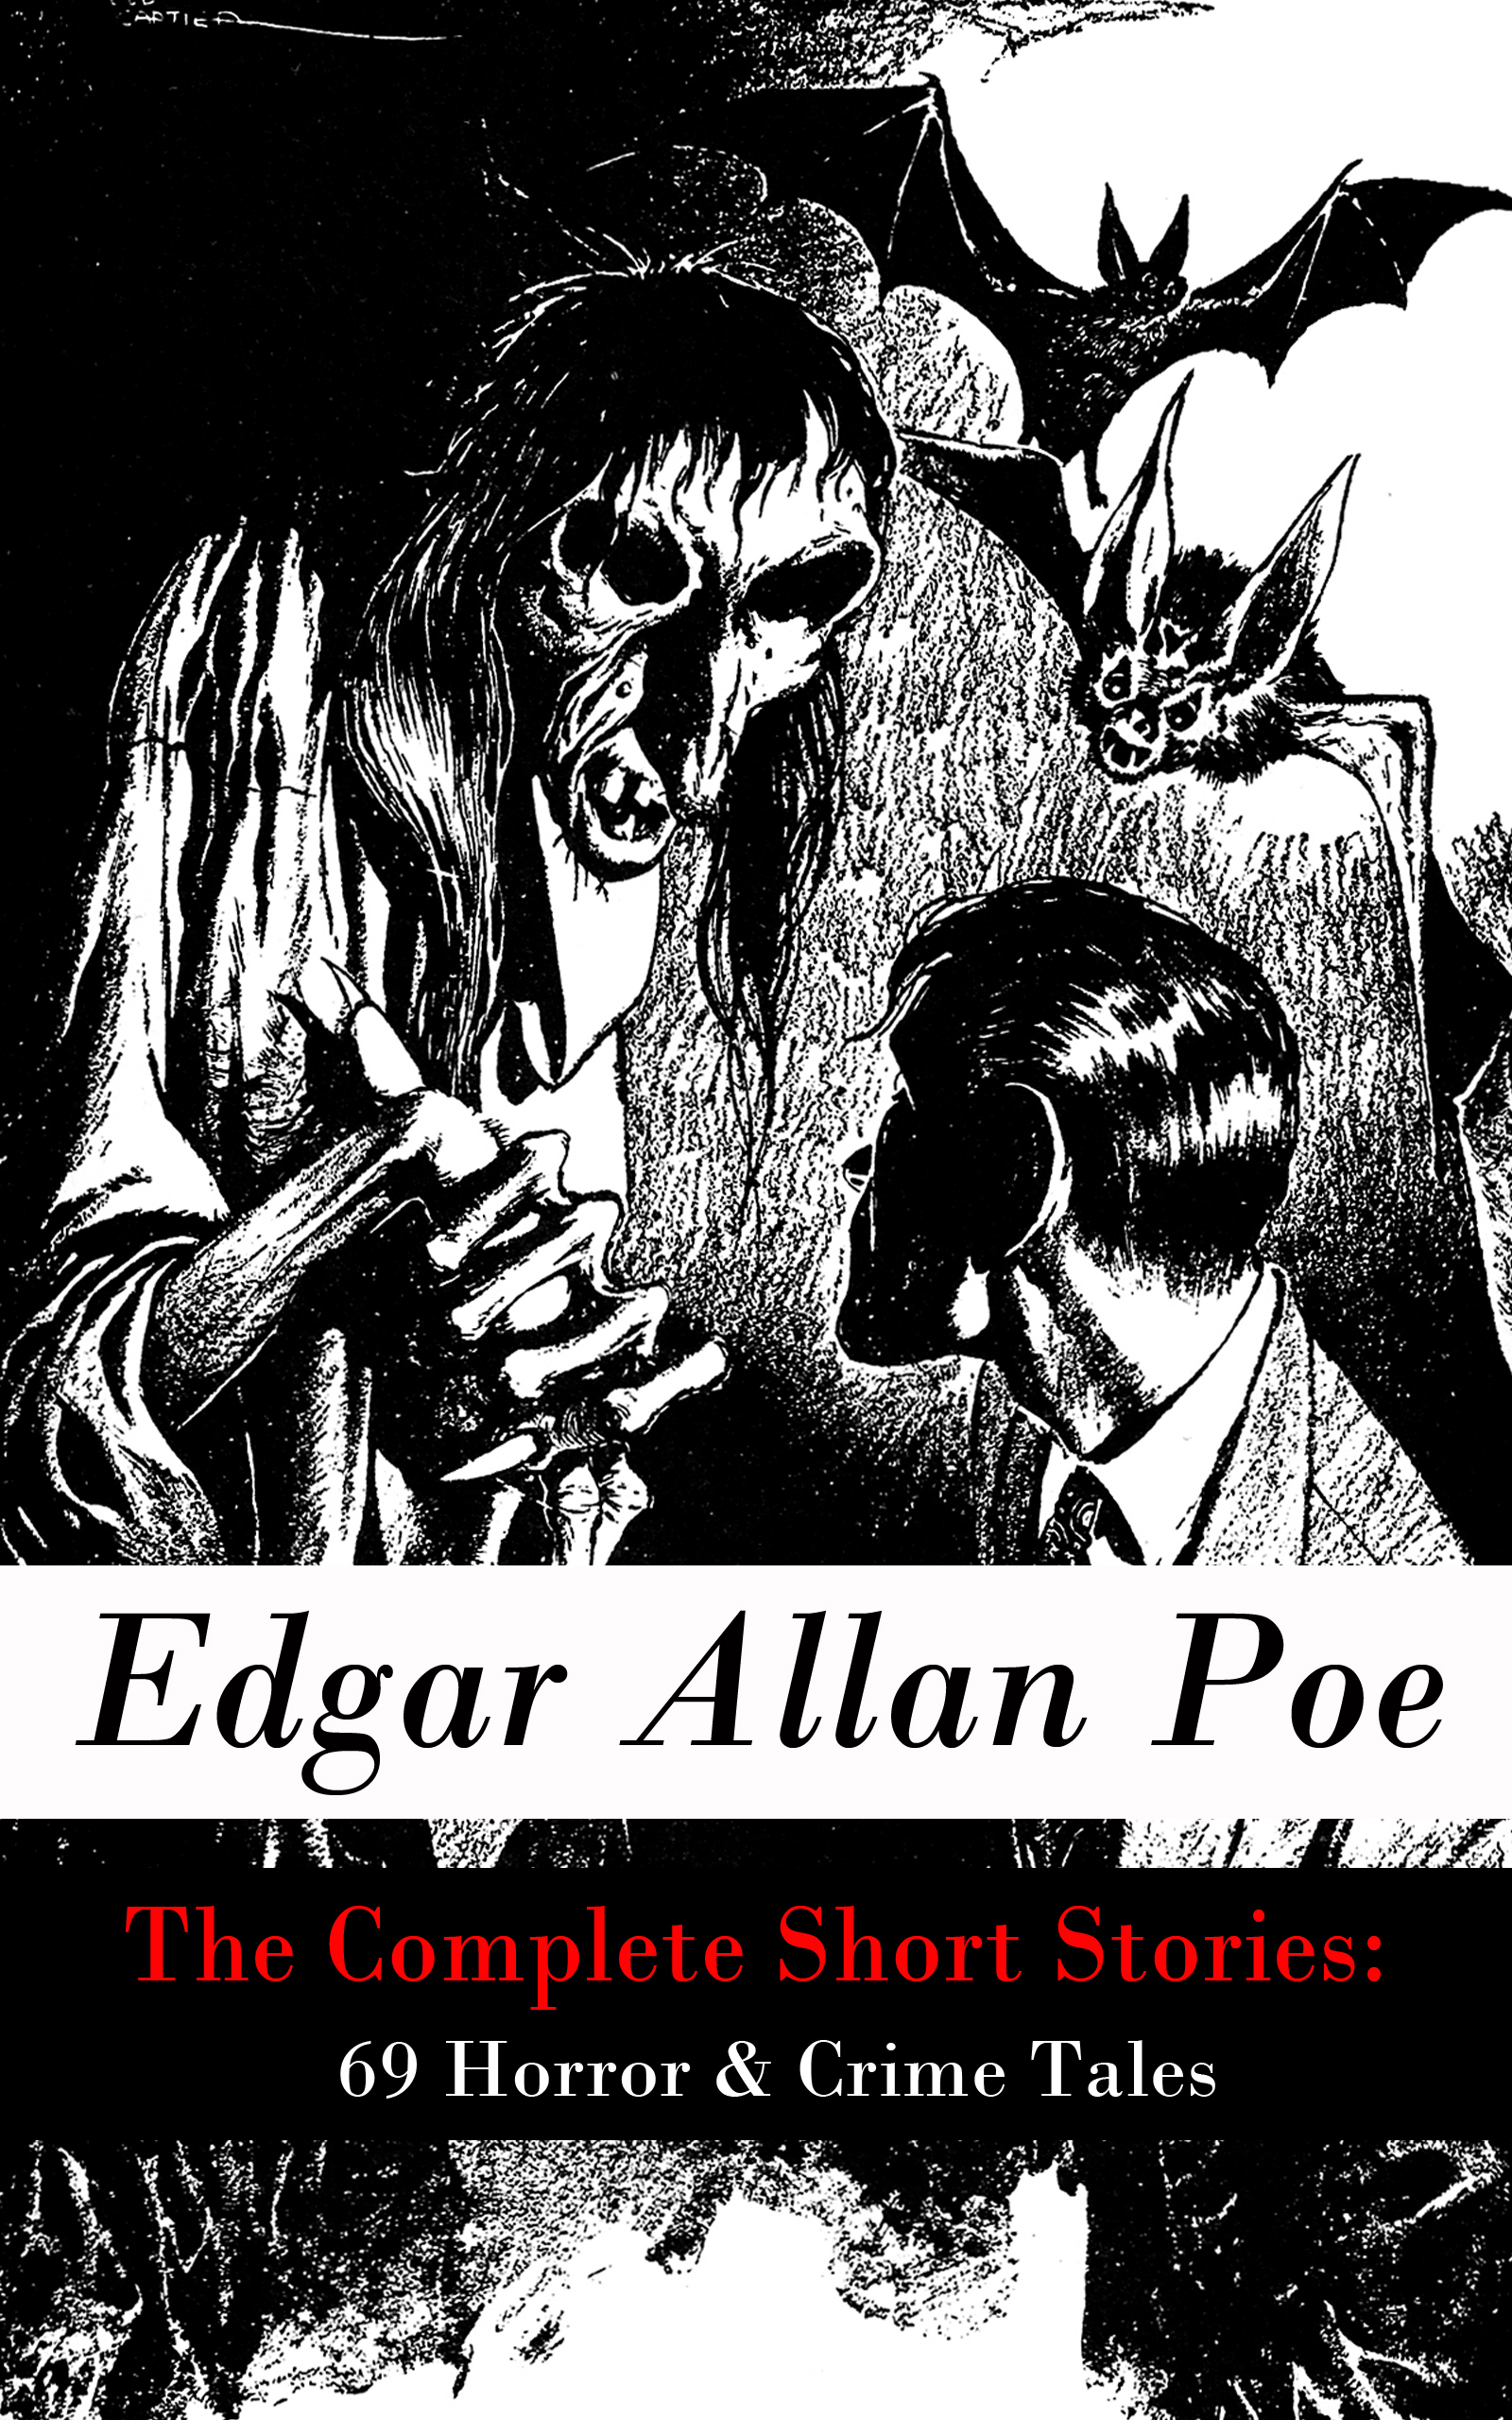 The Complete Short Stories: 69 Horror & Crime Tales